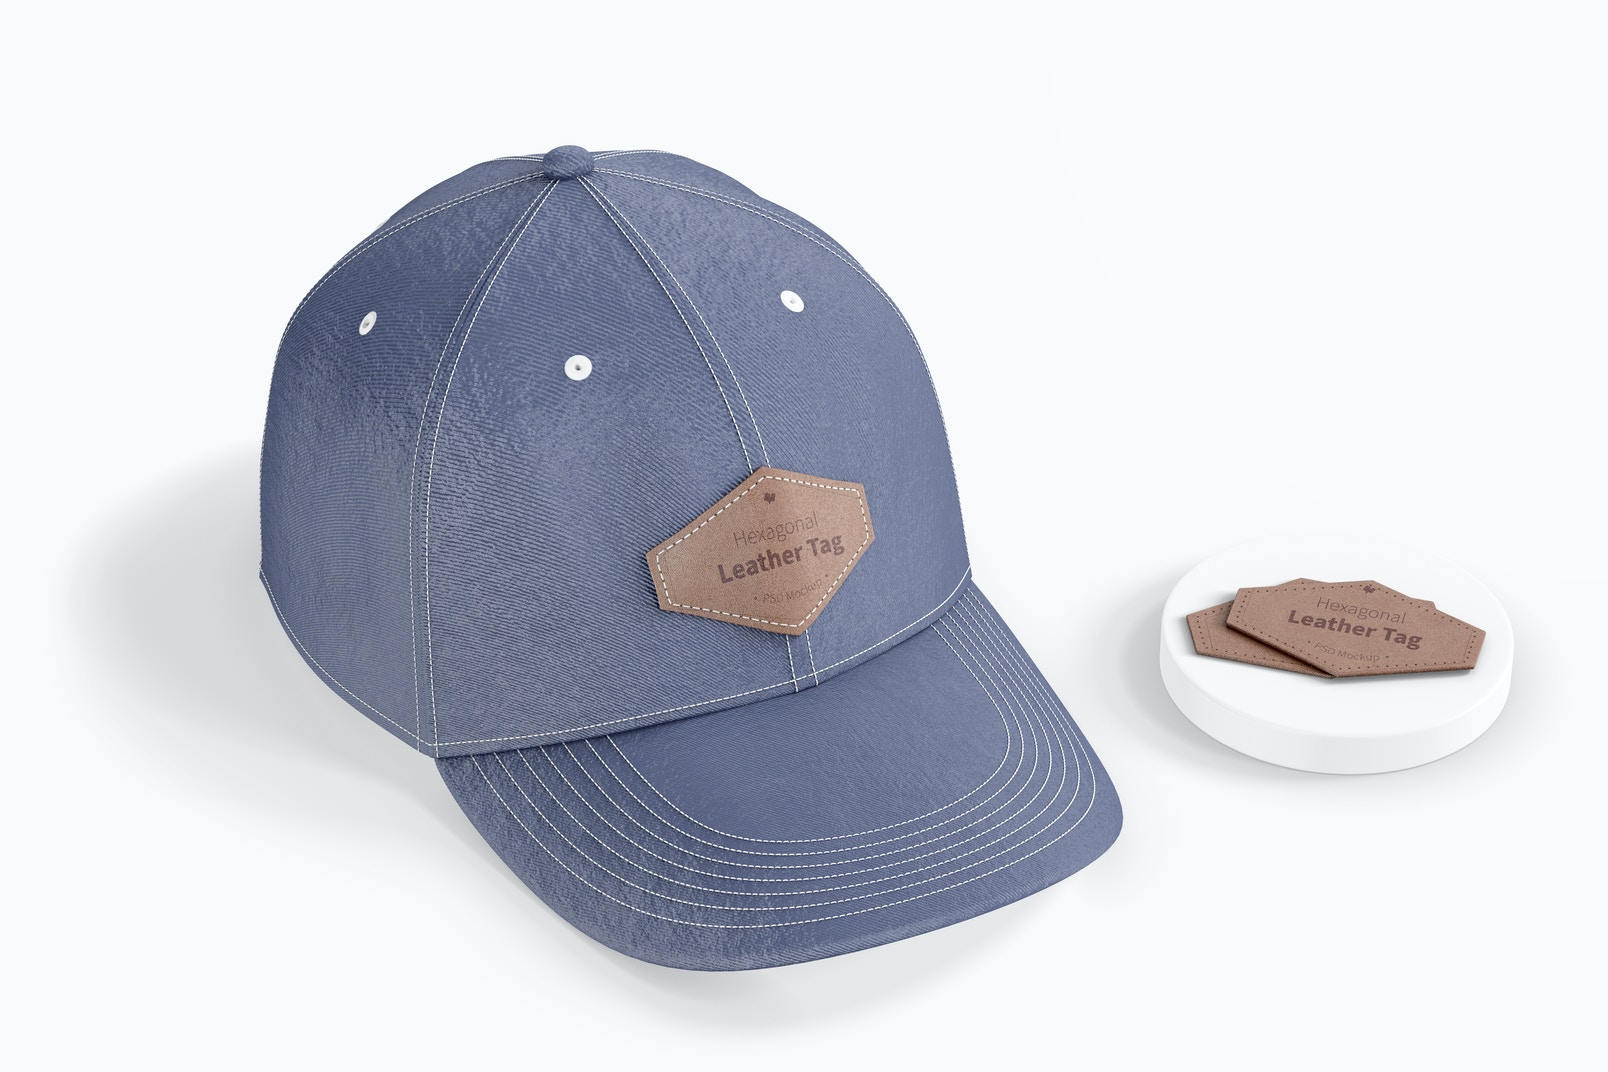 Hexagonal Leather Tags on Cap Mockup